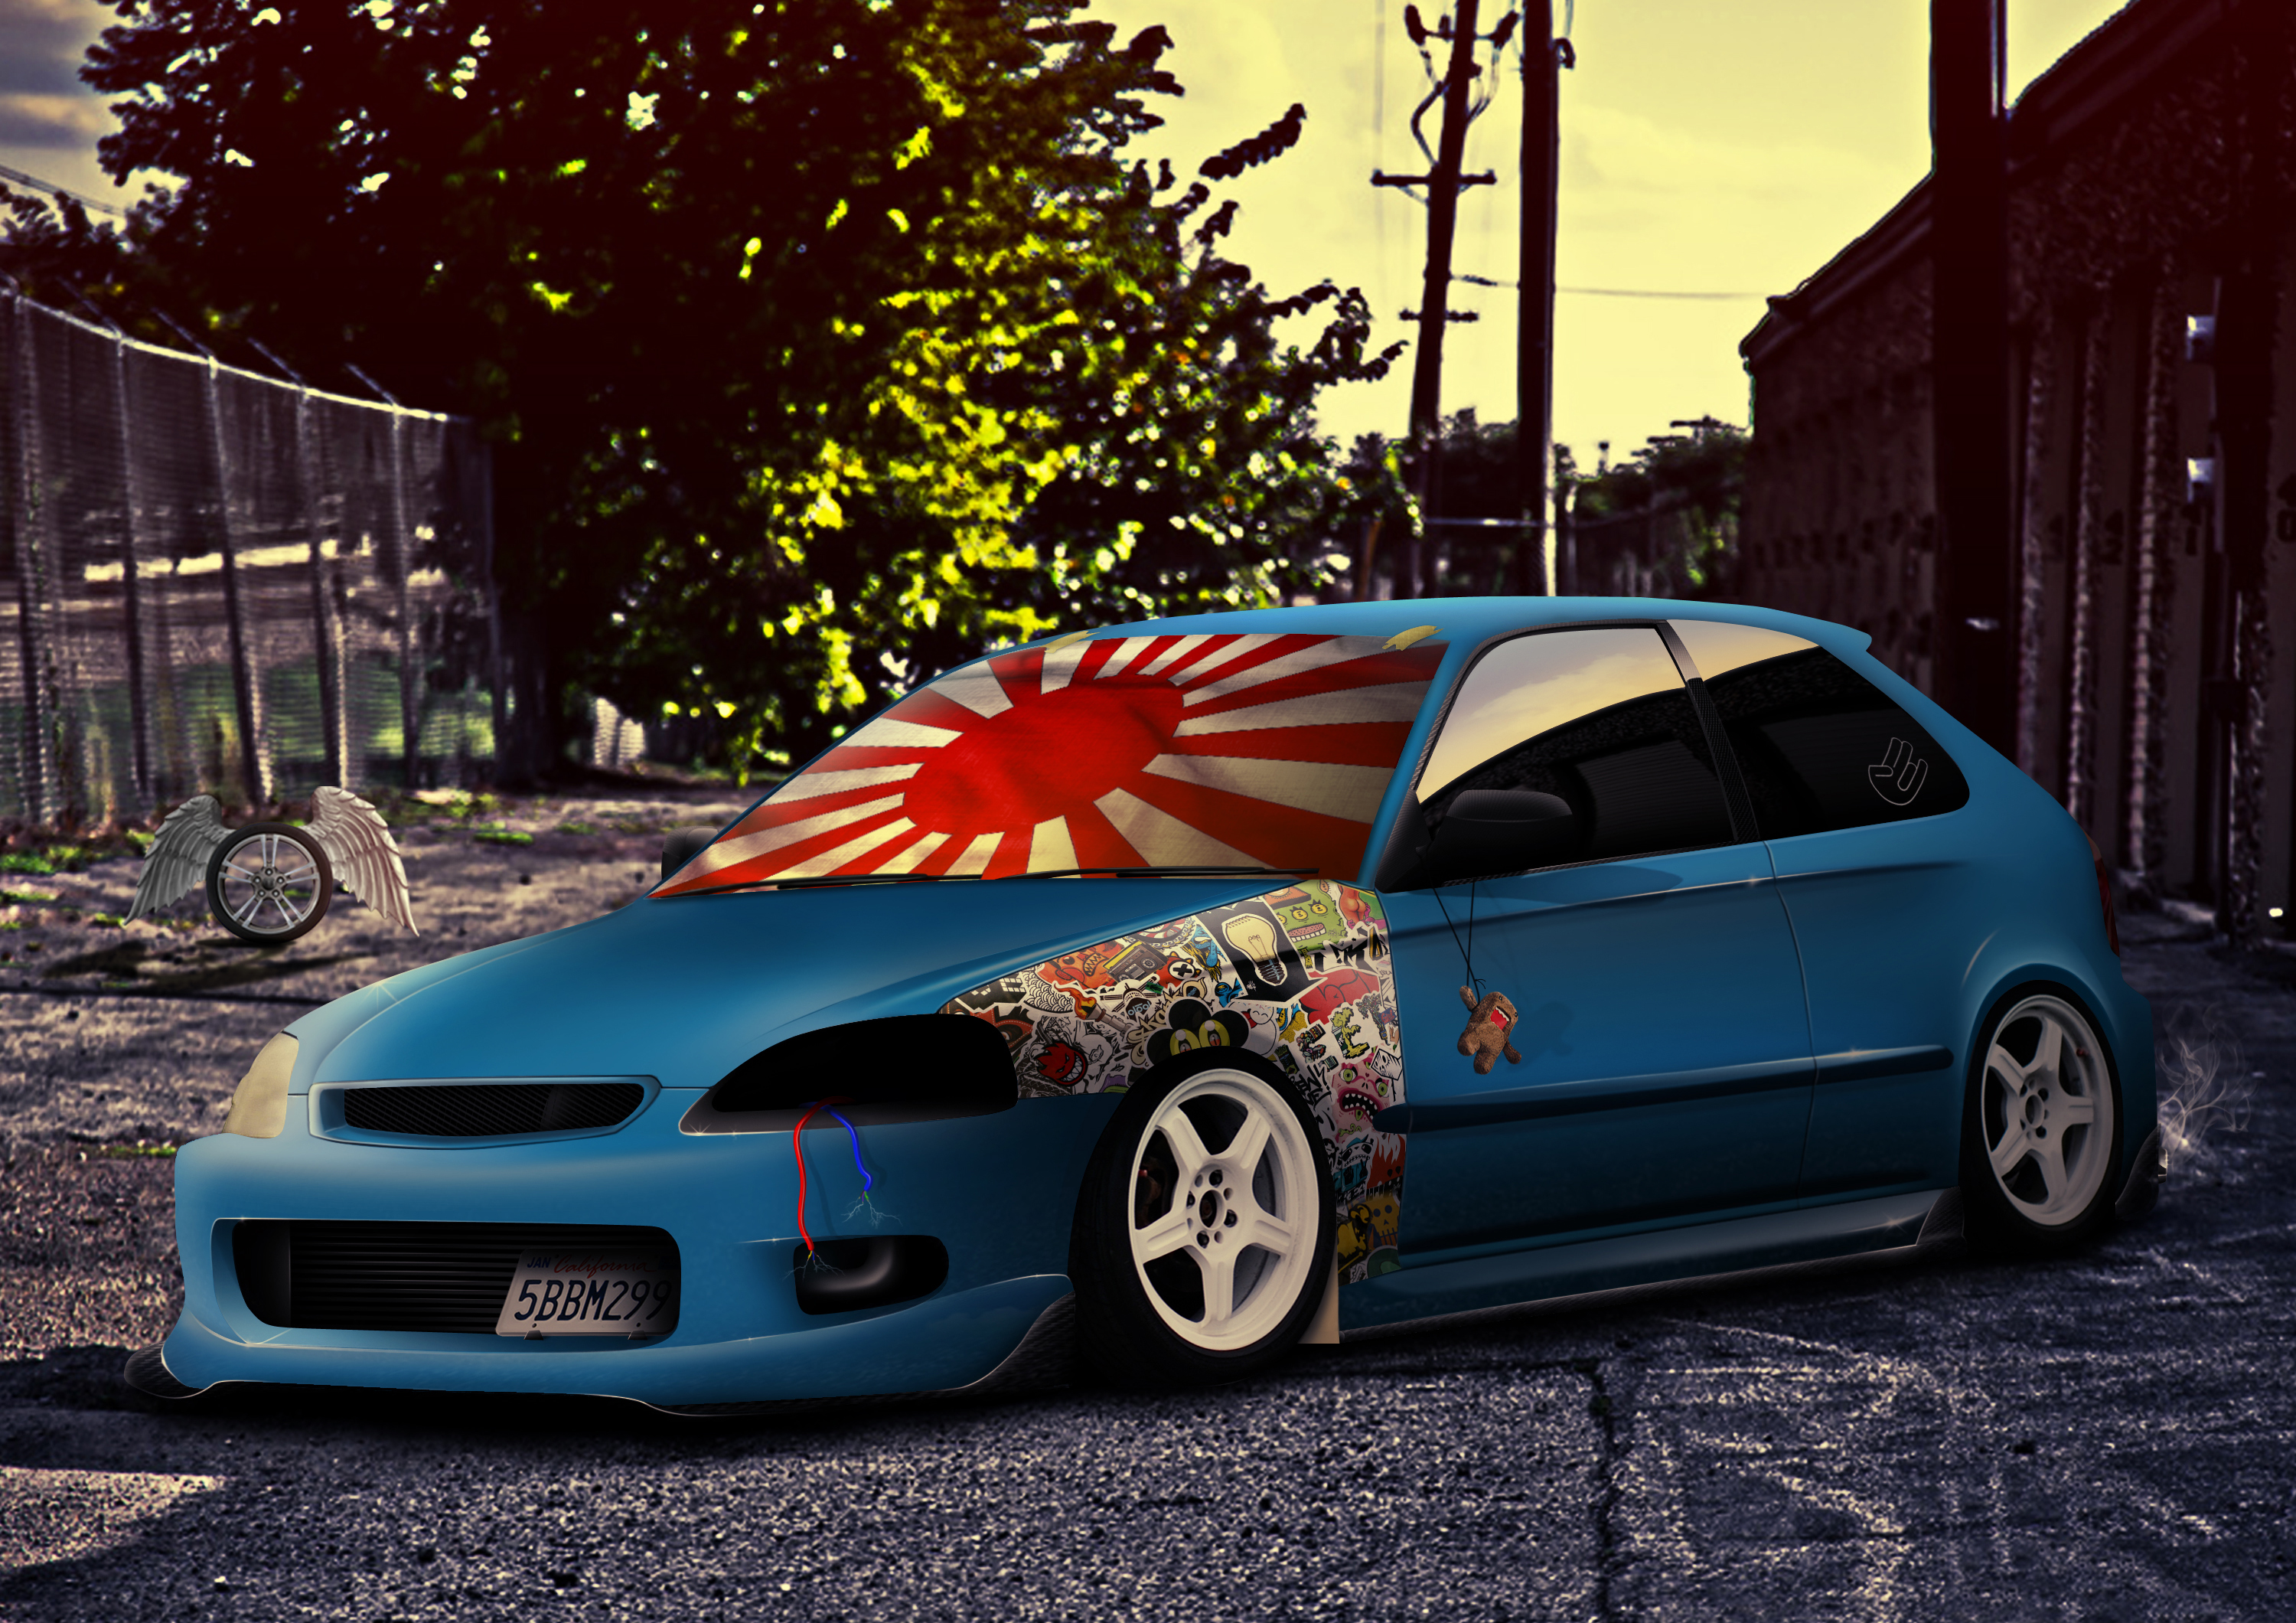 Wallpaperwiki Honda Civic Jdm Hd Wallpapers PIC WPB0012623